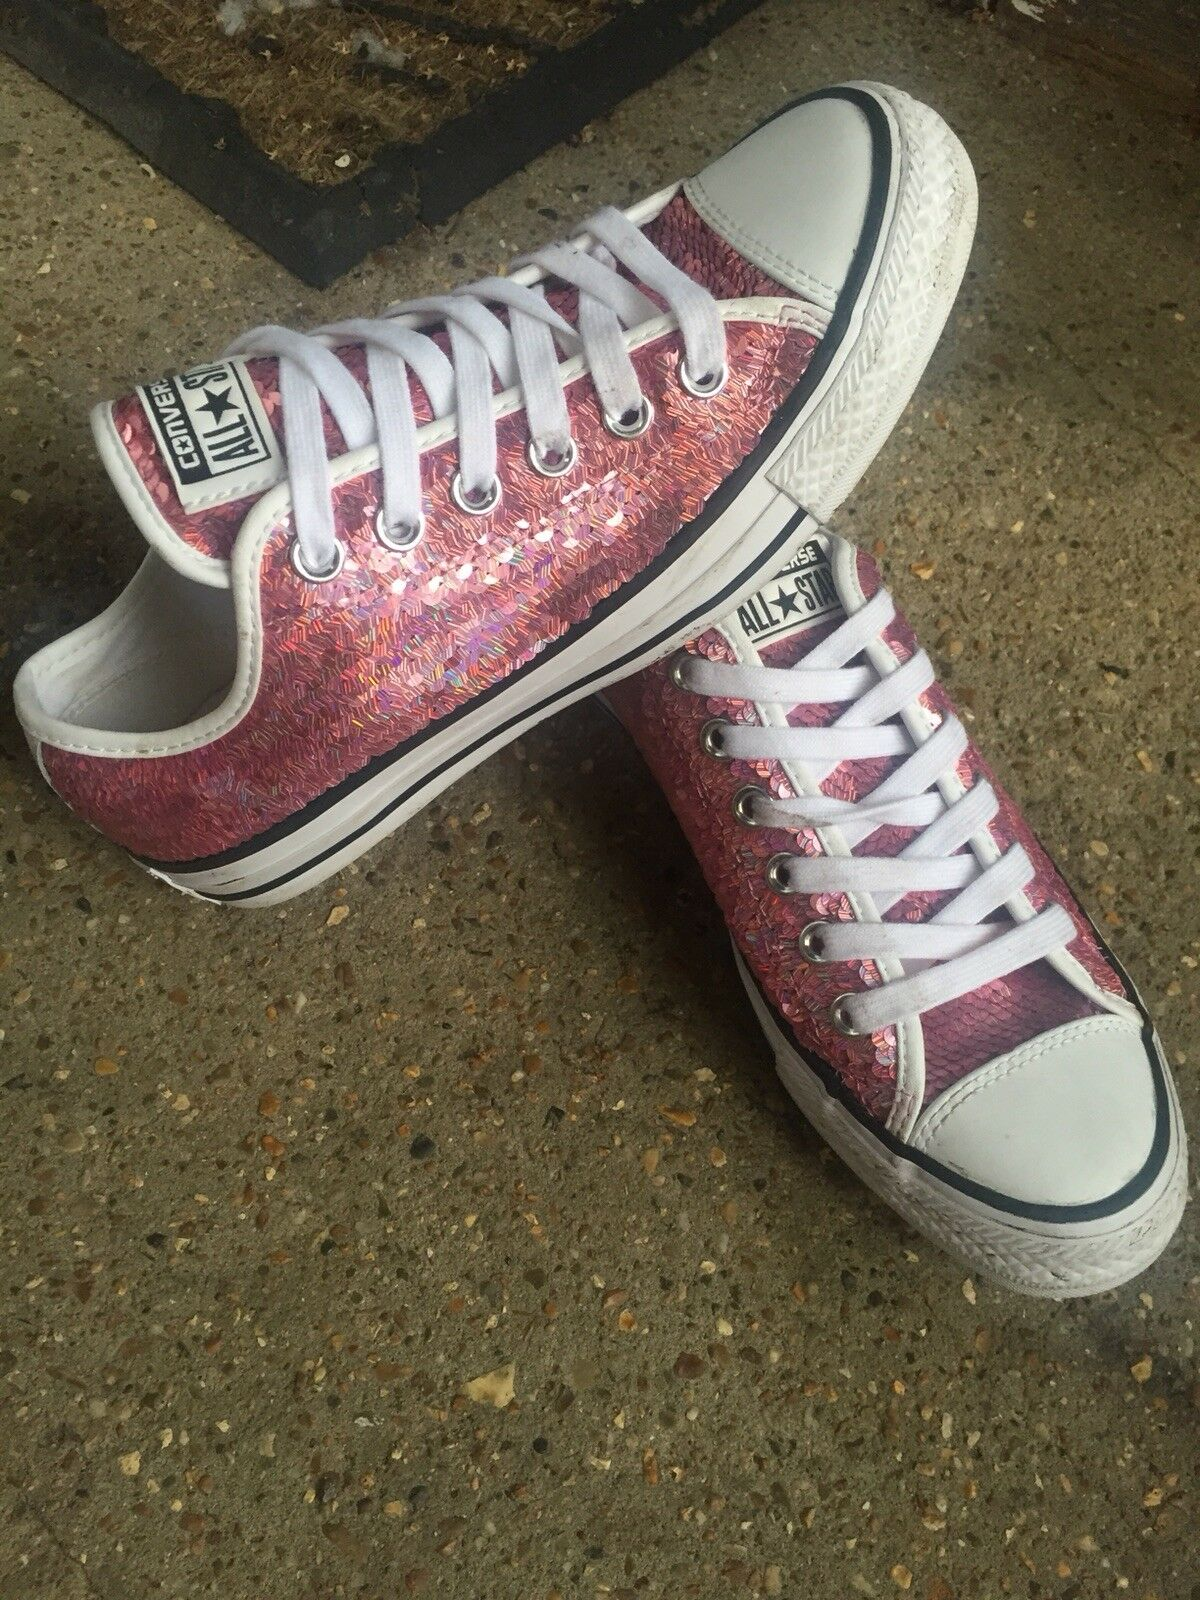 Converse Chucks Ultra Rare Pink Sequinned Converse Trainers Uk Size 5, Gorgeous